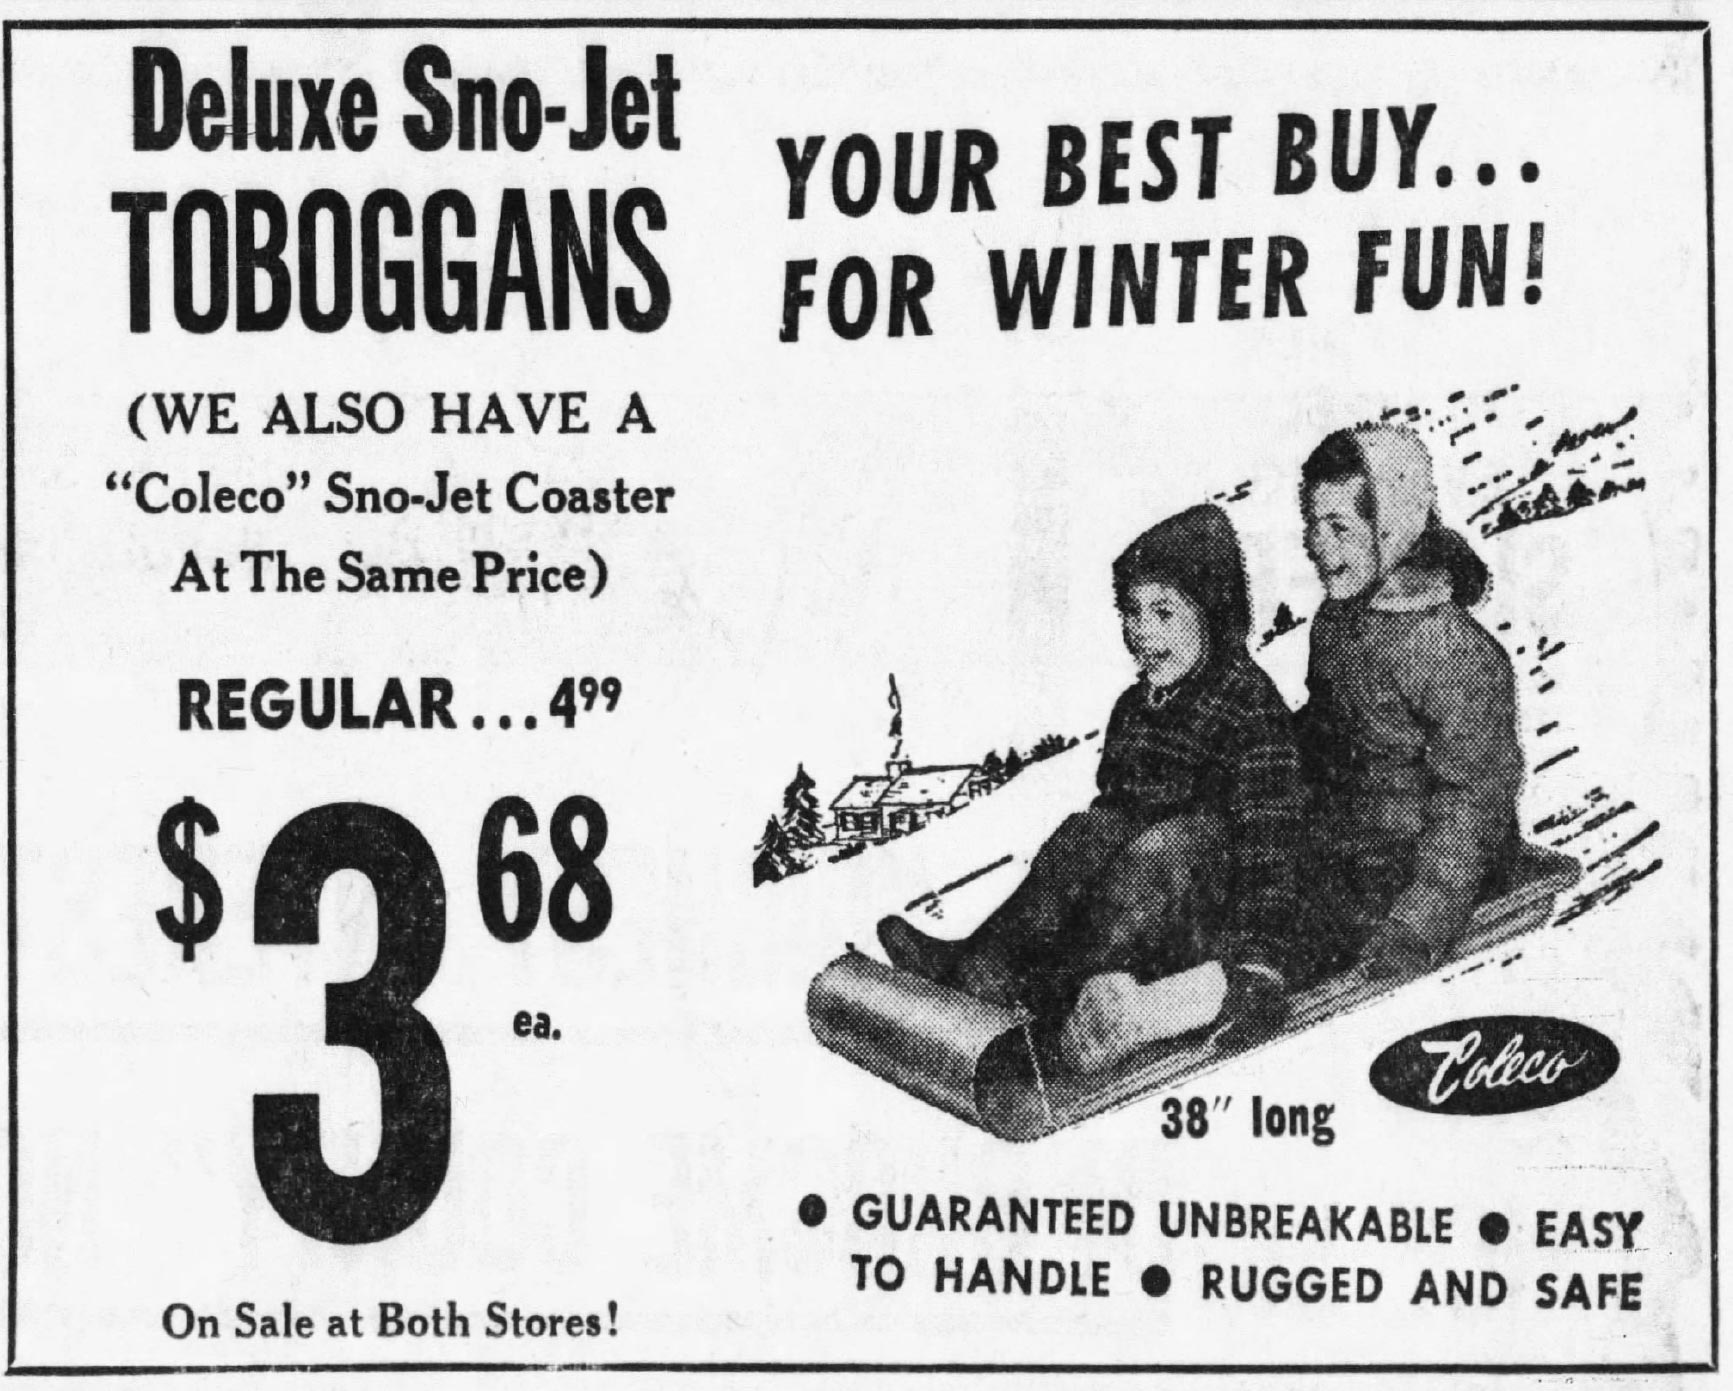 Toboggan ad by Coleco, makers of the ColecoVision home video game console